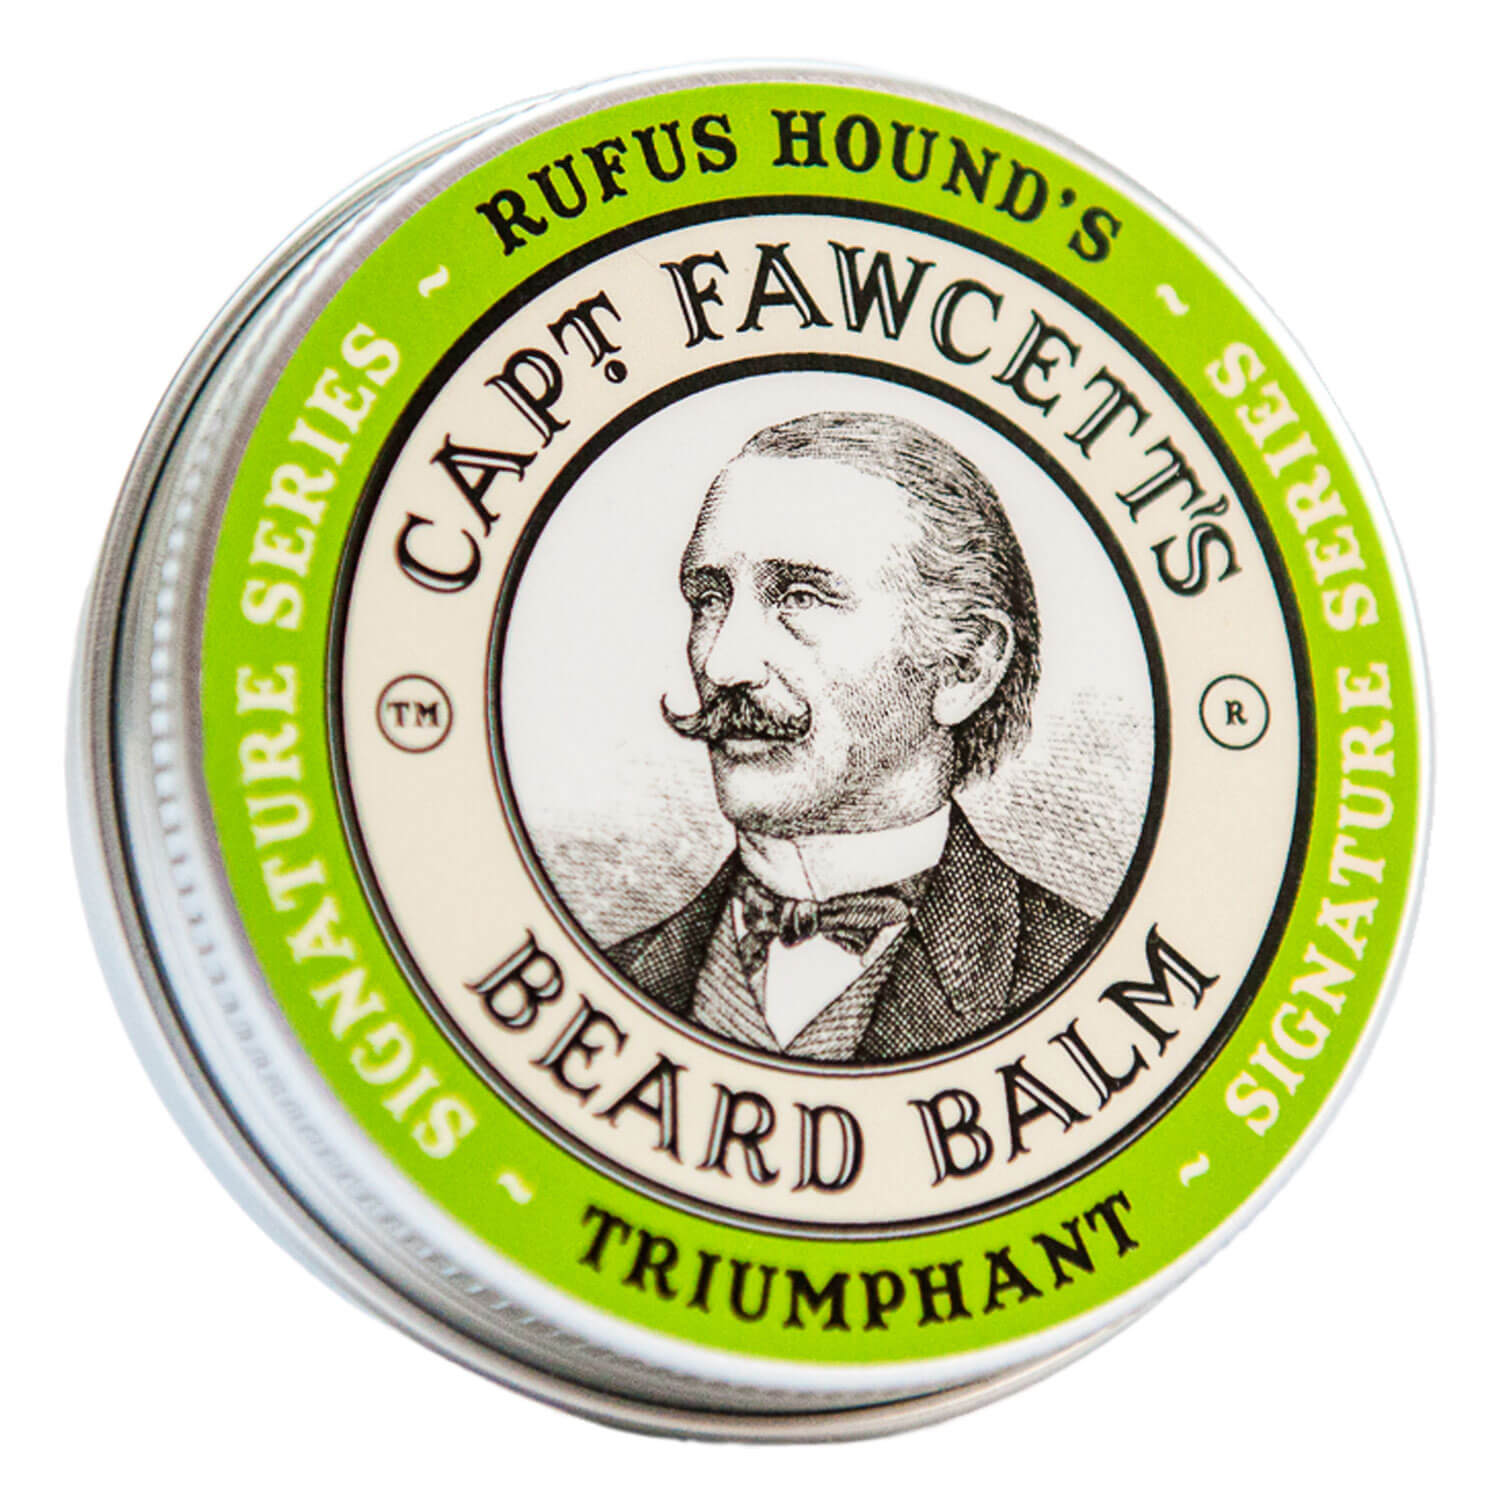 Capt. Fawcett Care - Triumphant Beard Balm